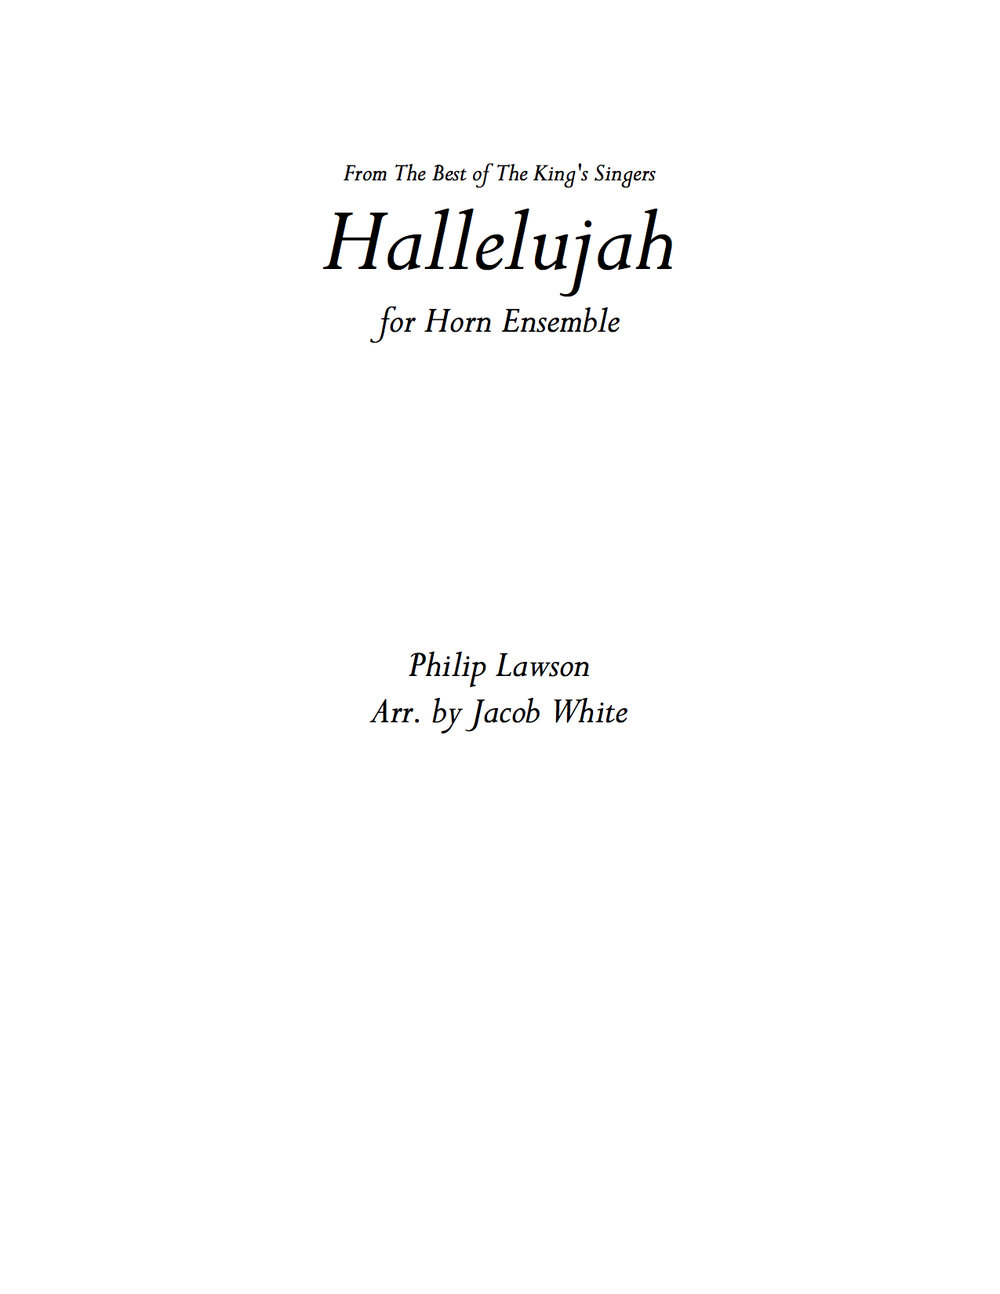 Hallelujah - The King's Singers, arr. Jacob White